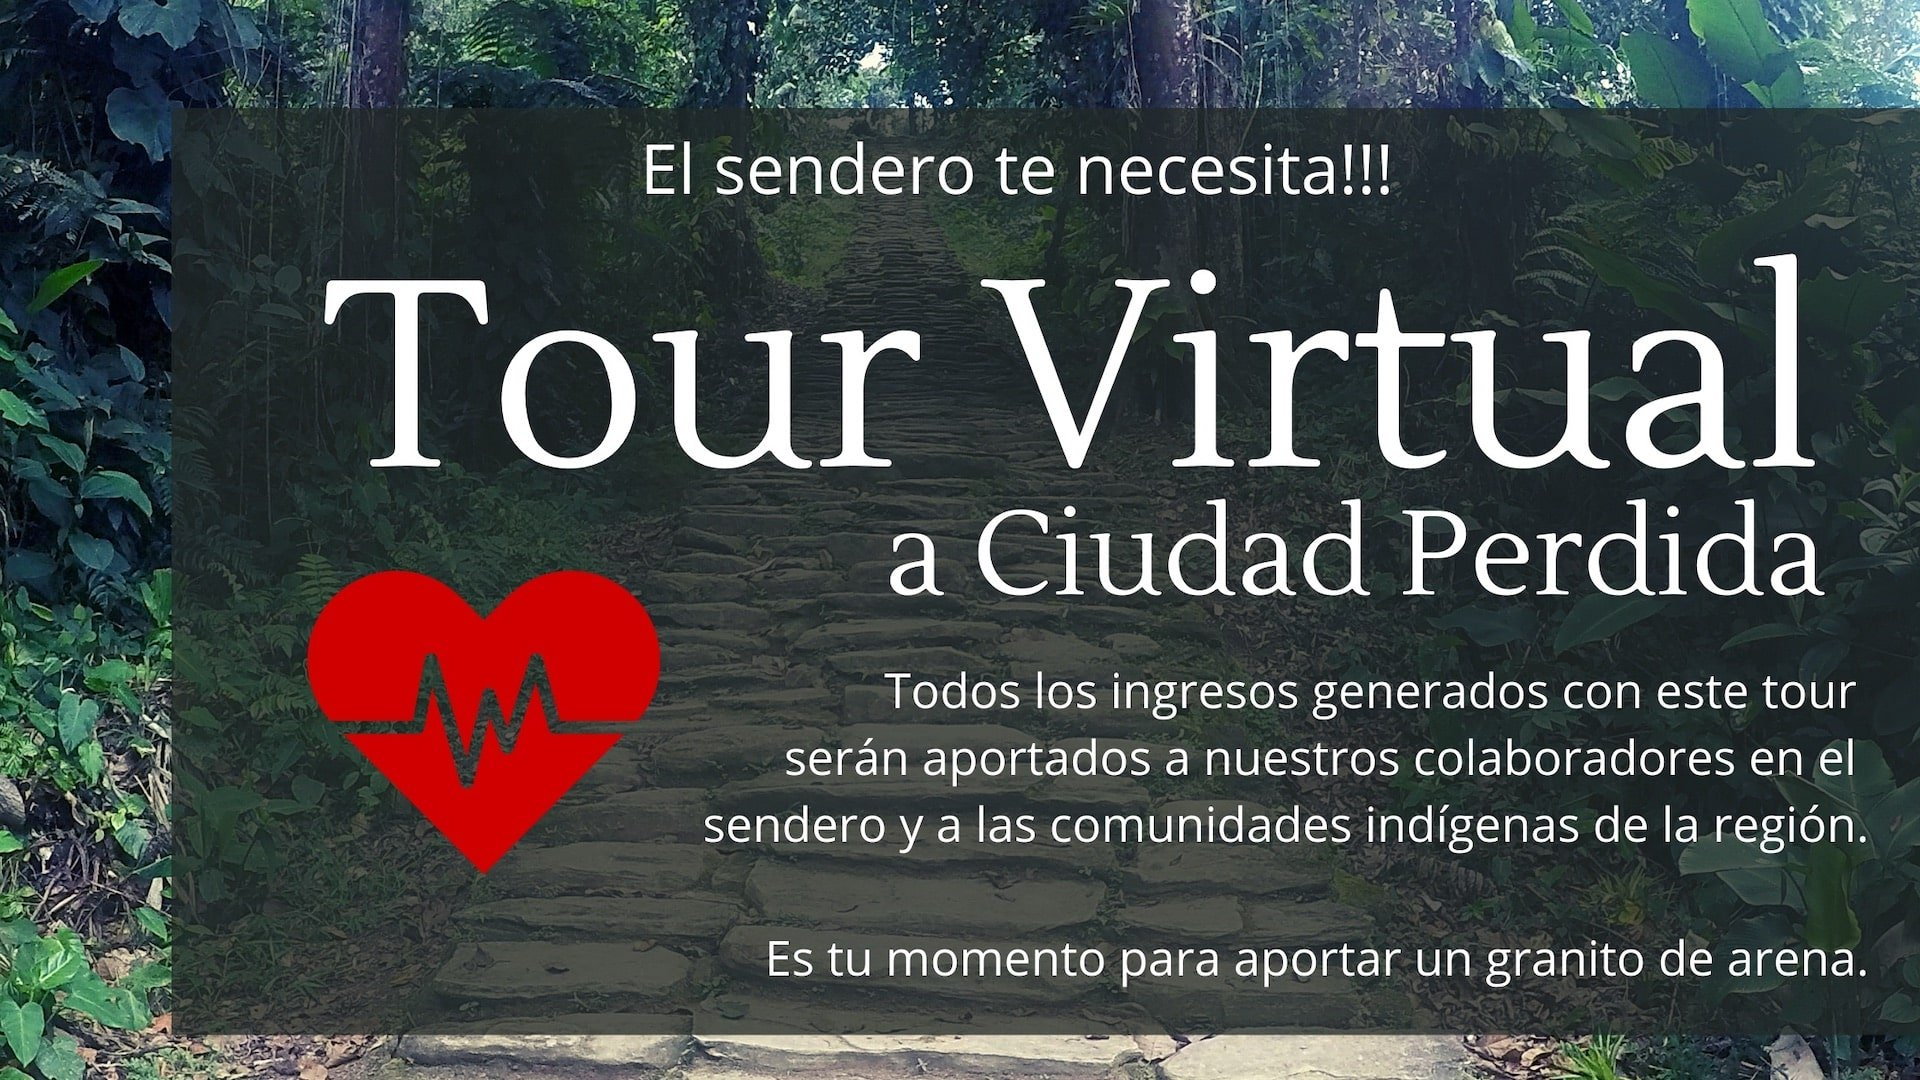 Tour Virtual a Ciudad Perdida